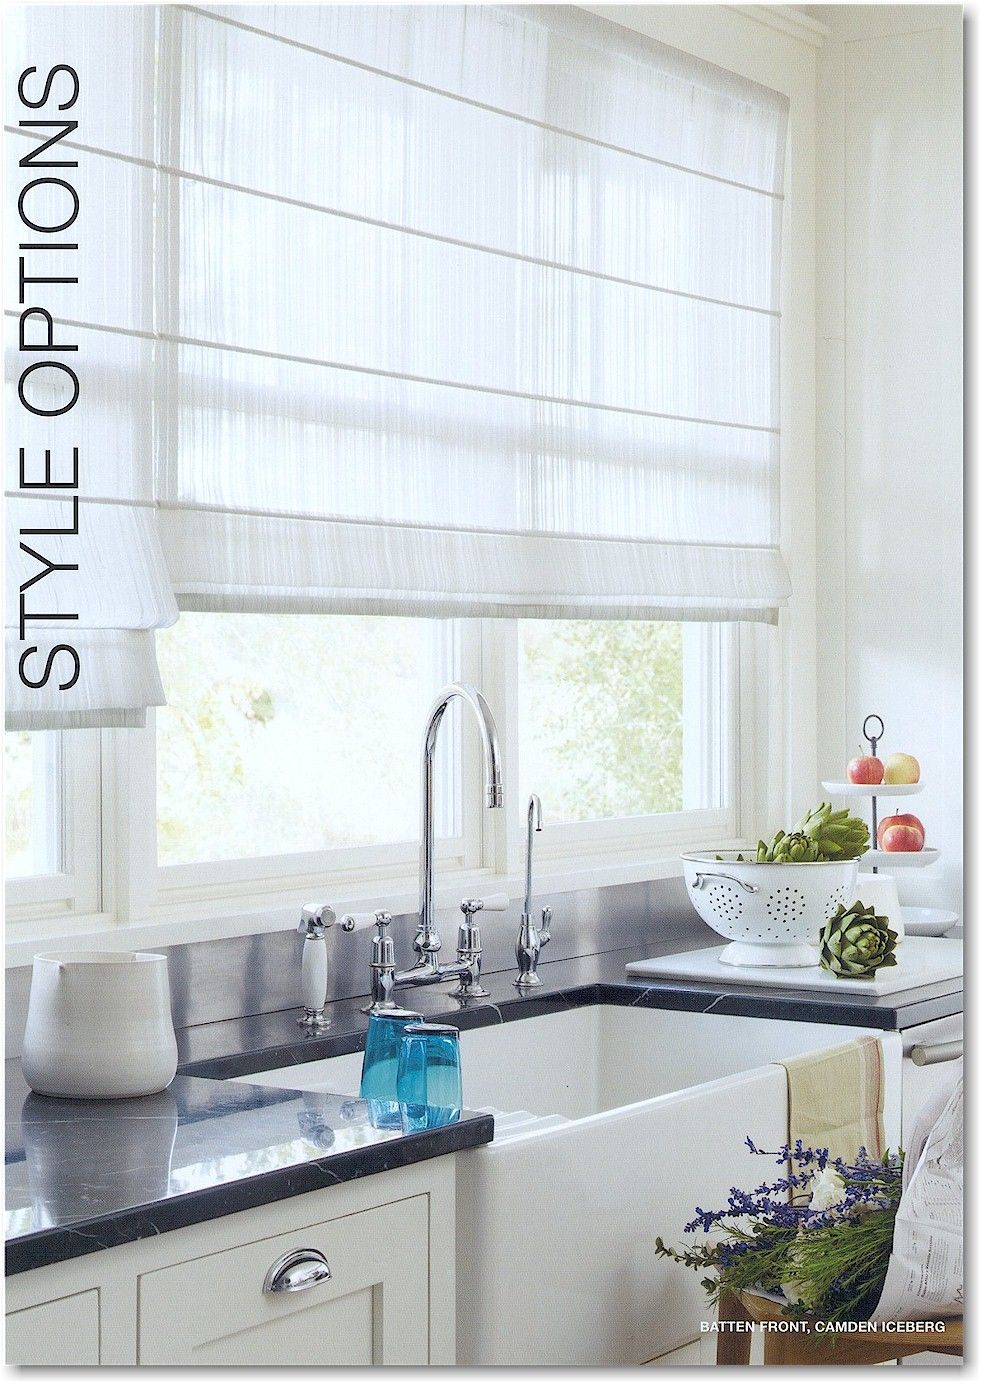 Hunter Douglas Design Studio Roman Shades In Sheer Fabric Bring A